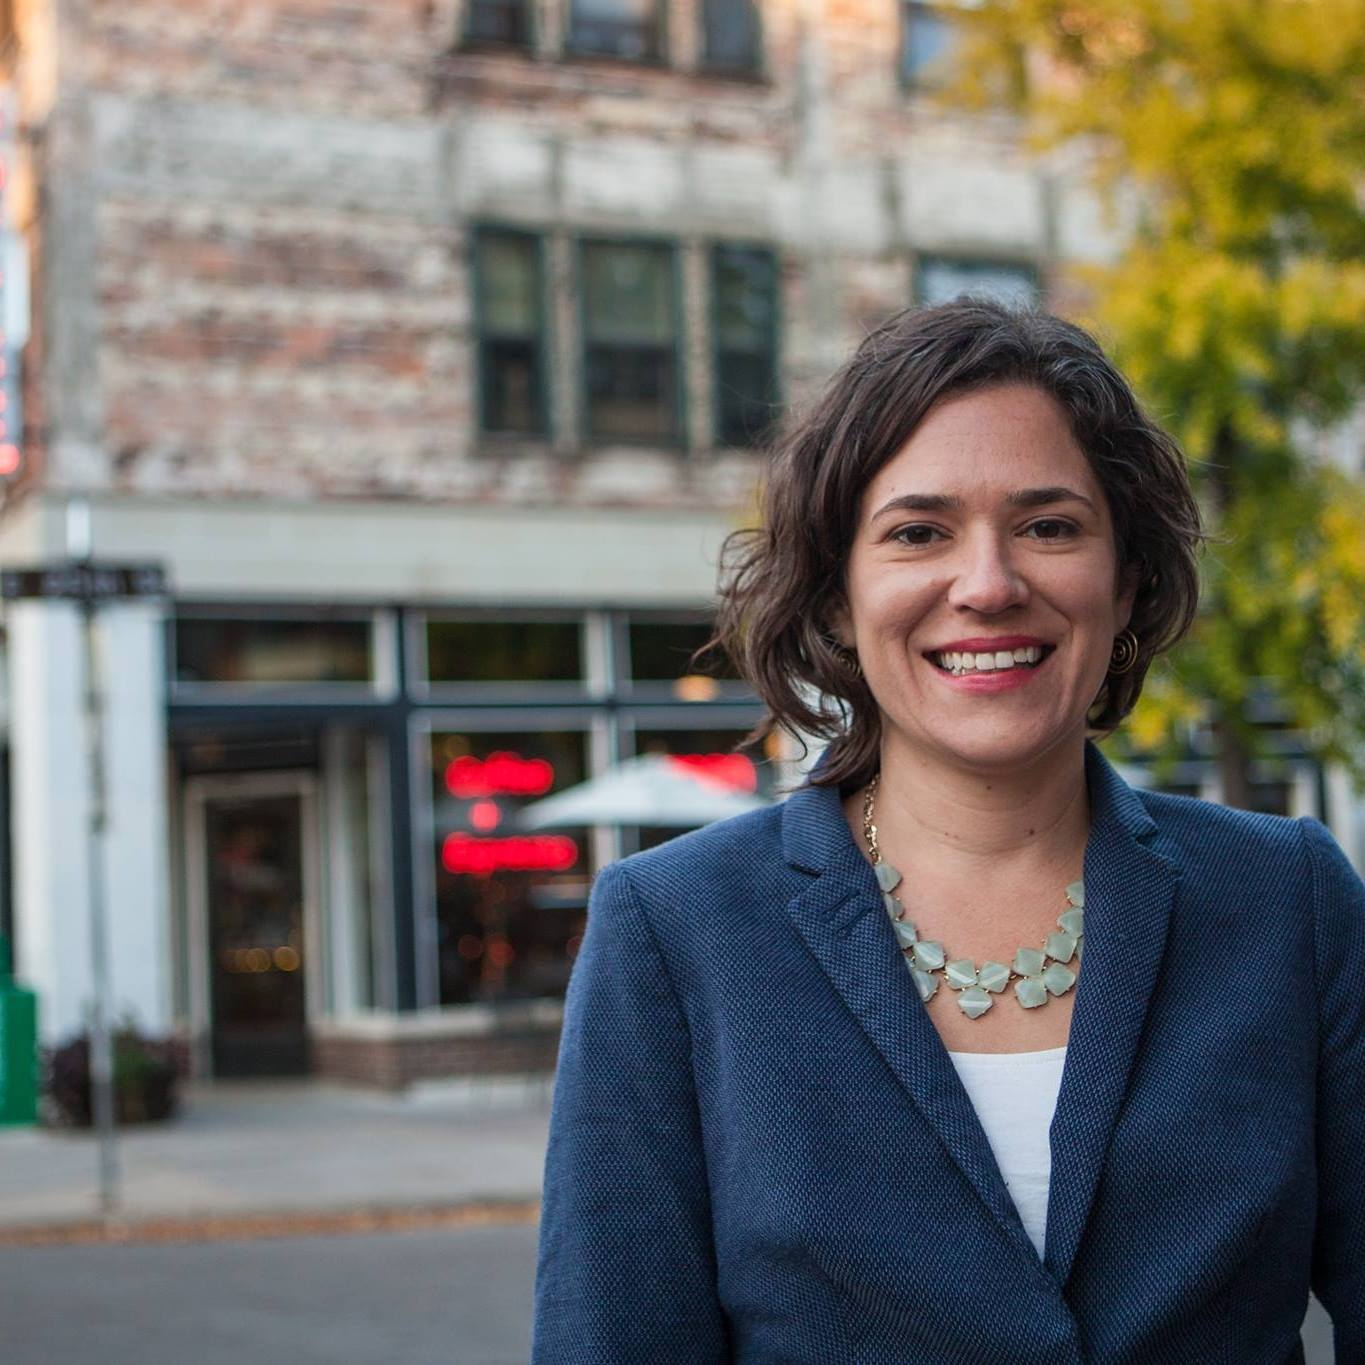 Lisa Bender, Pres, Mpls City Council